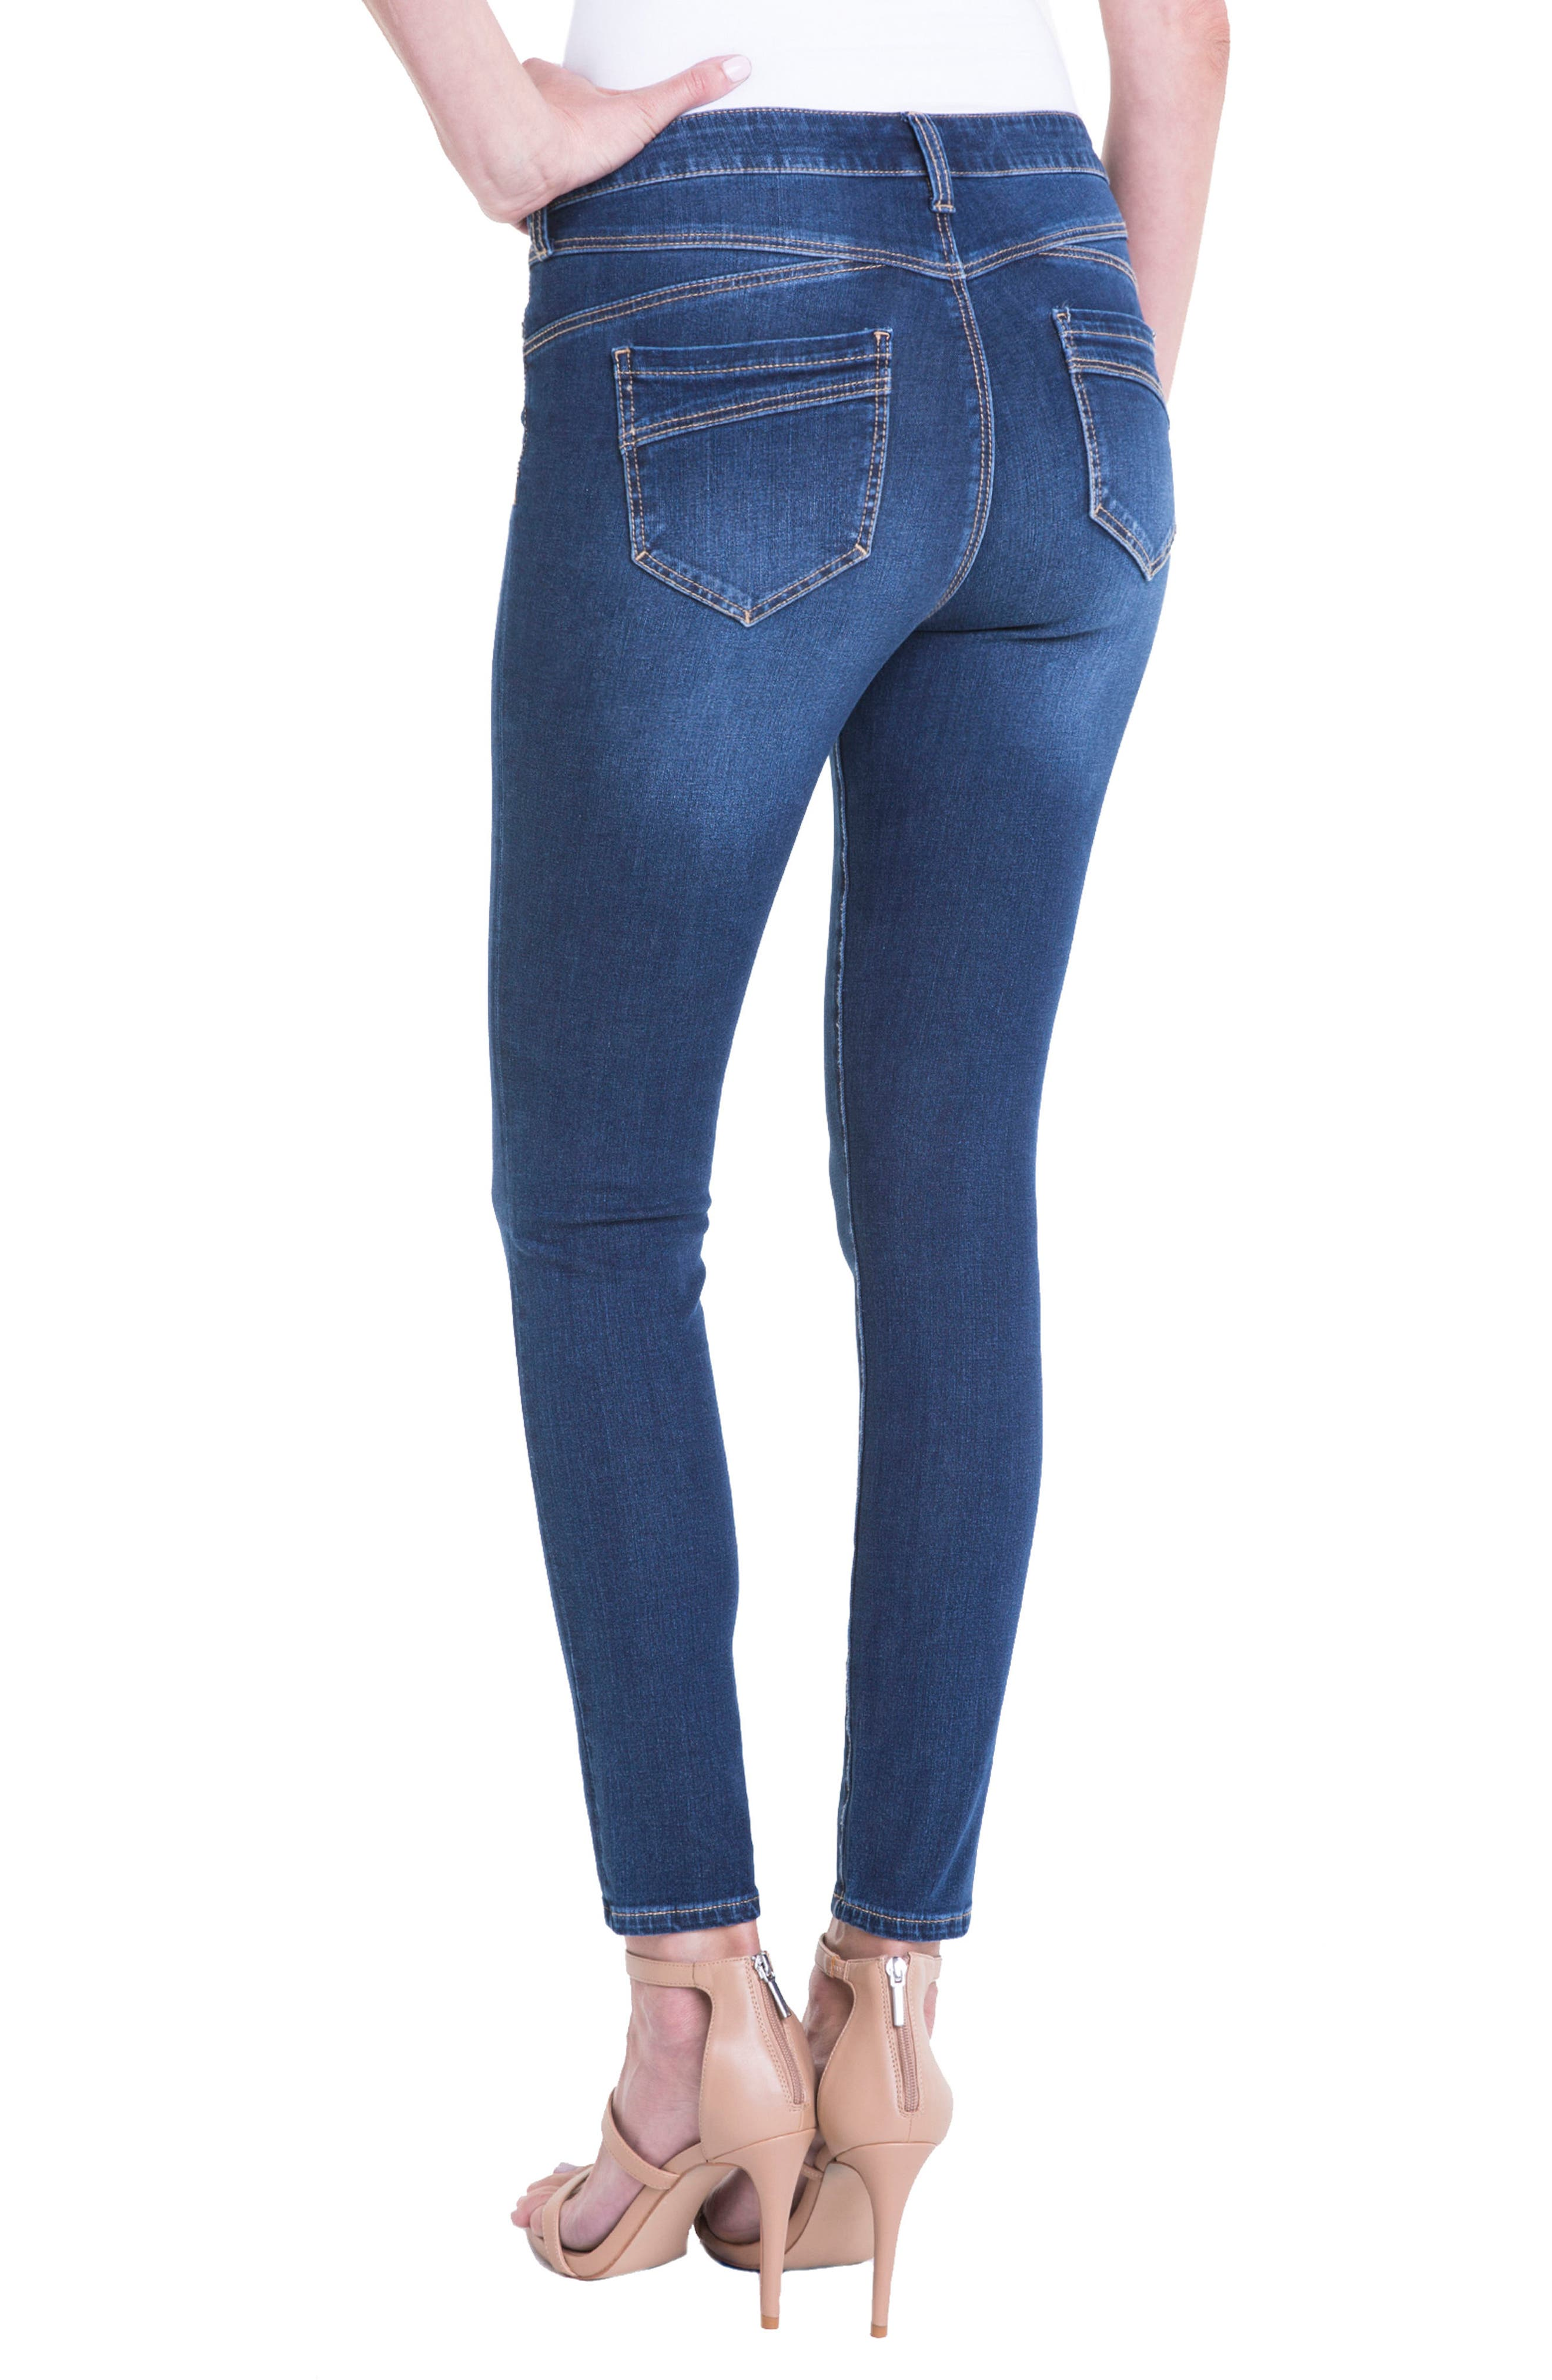 Jeans Company Piper Hugger Lift Sculpt Ankle Skinny Jeans,                             Alternate thumbnail 4, color,